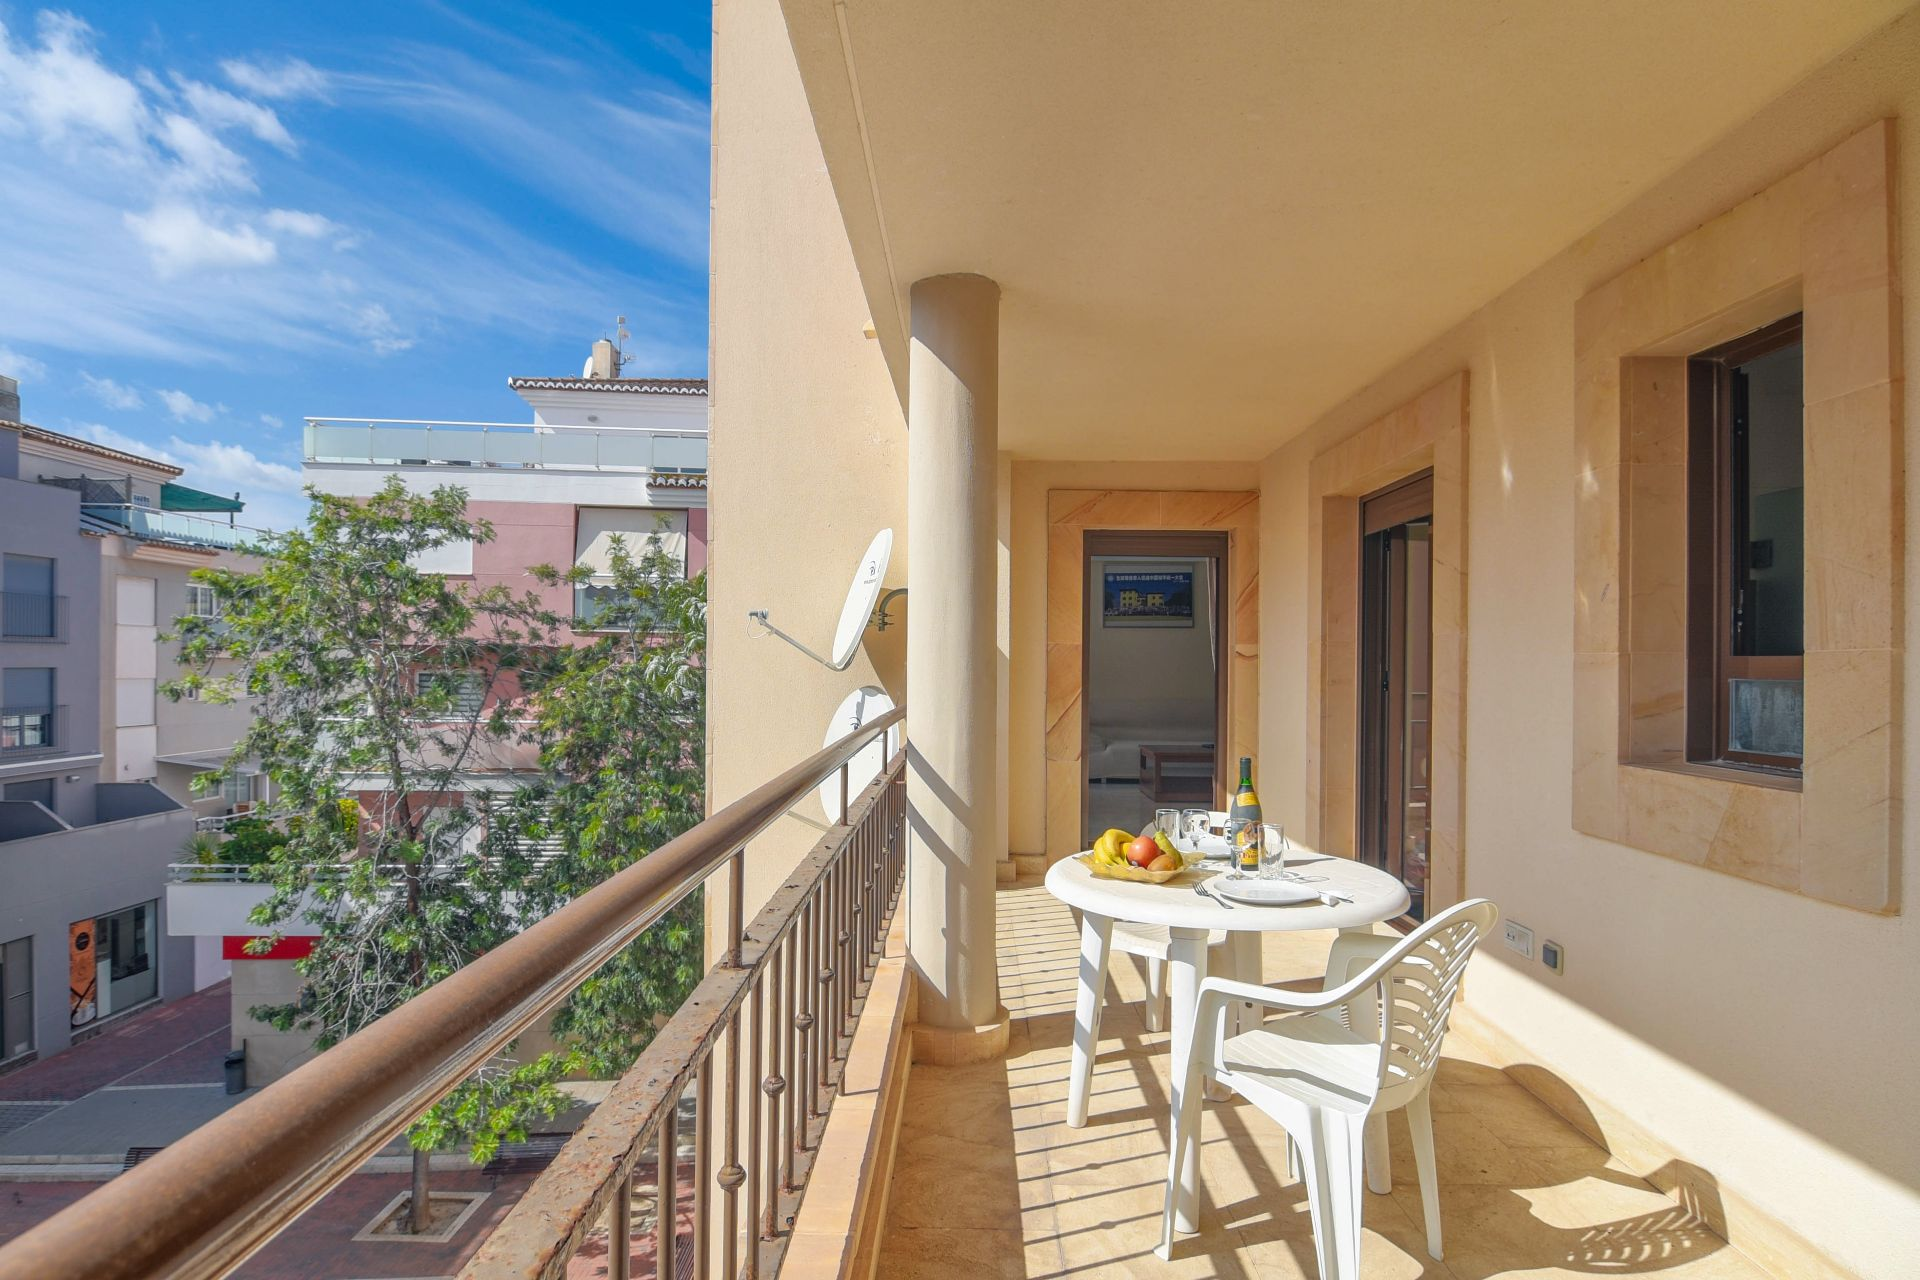 Flat in Moraira, for sale